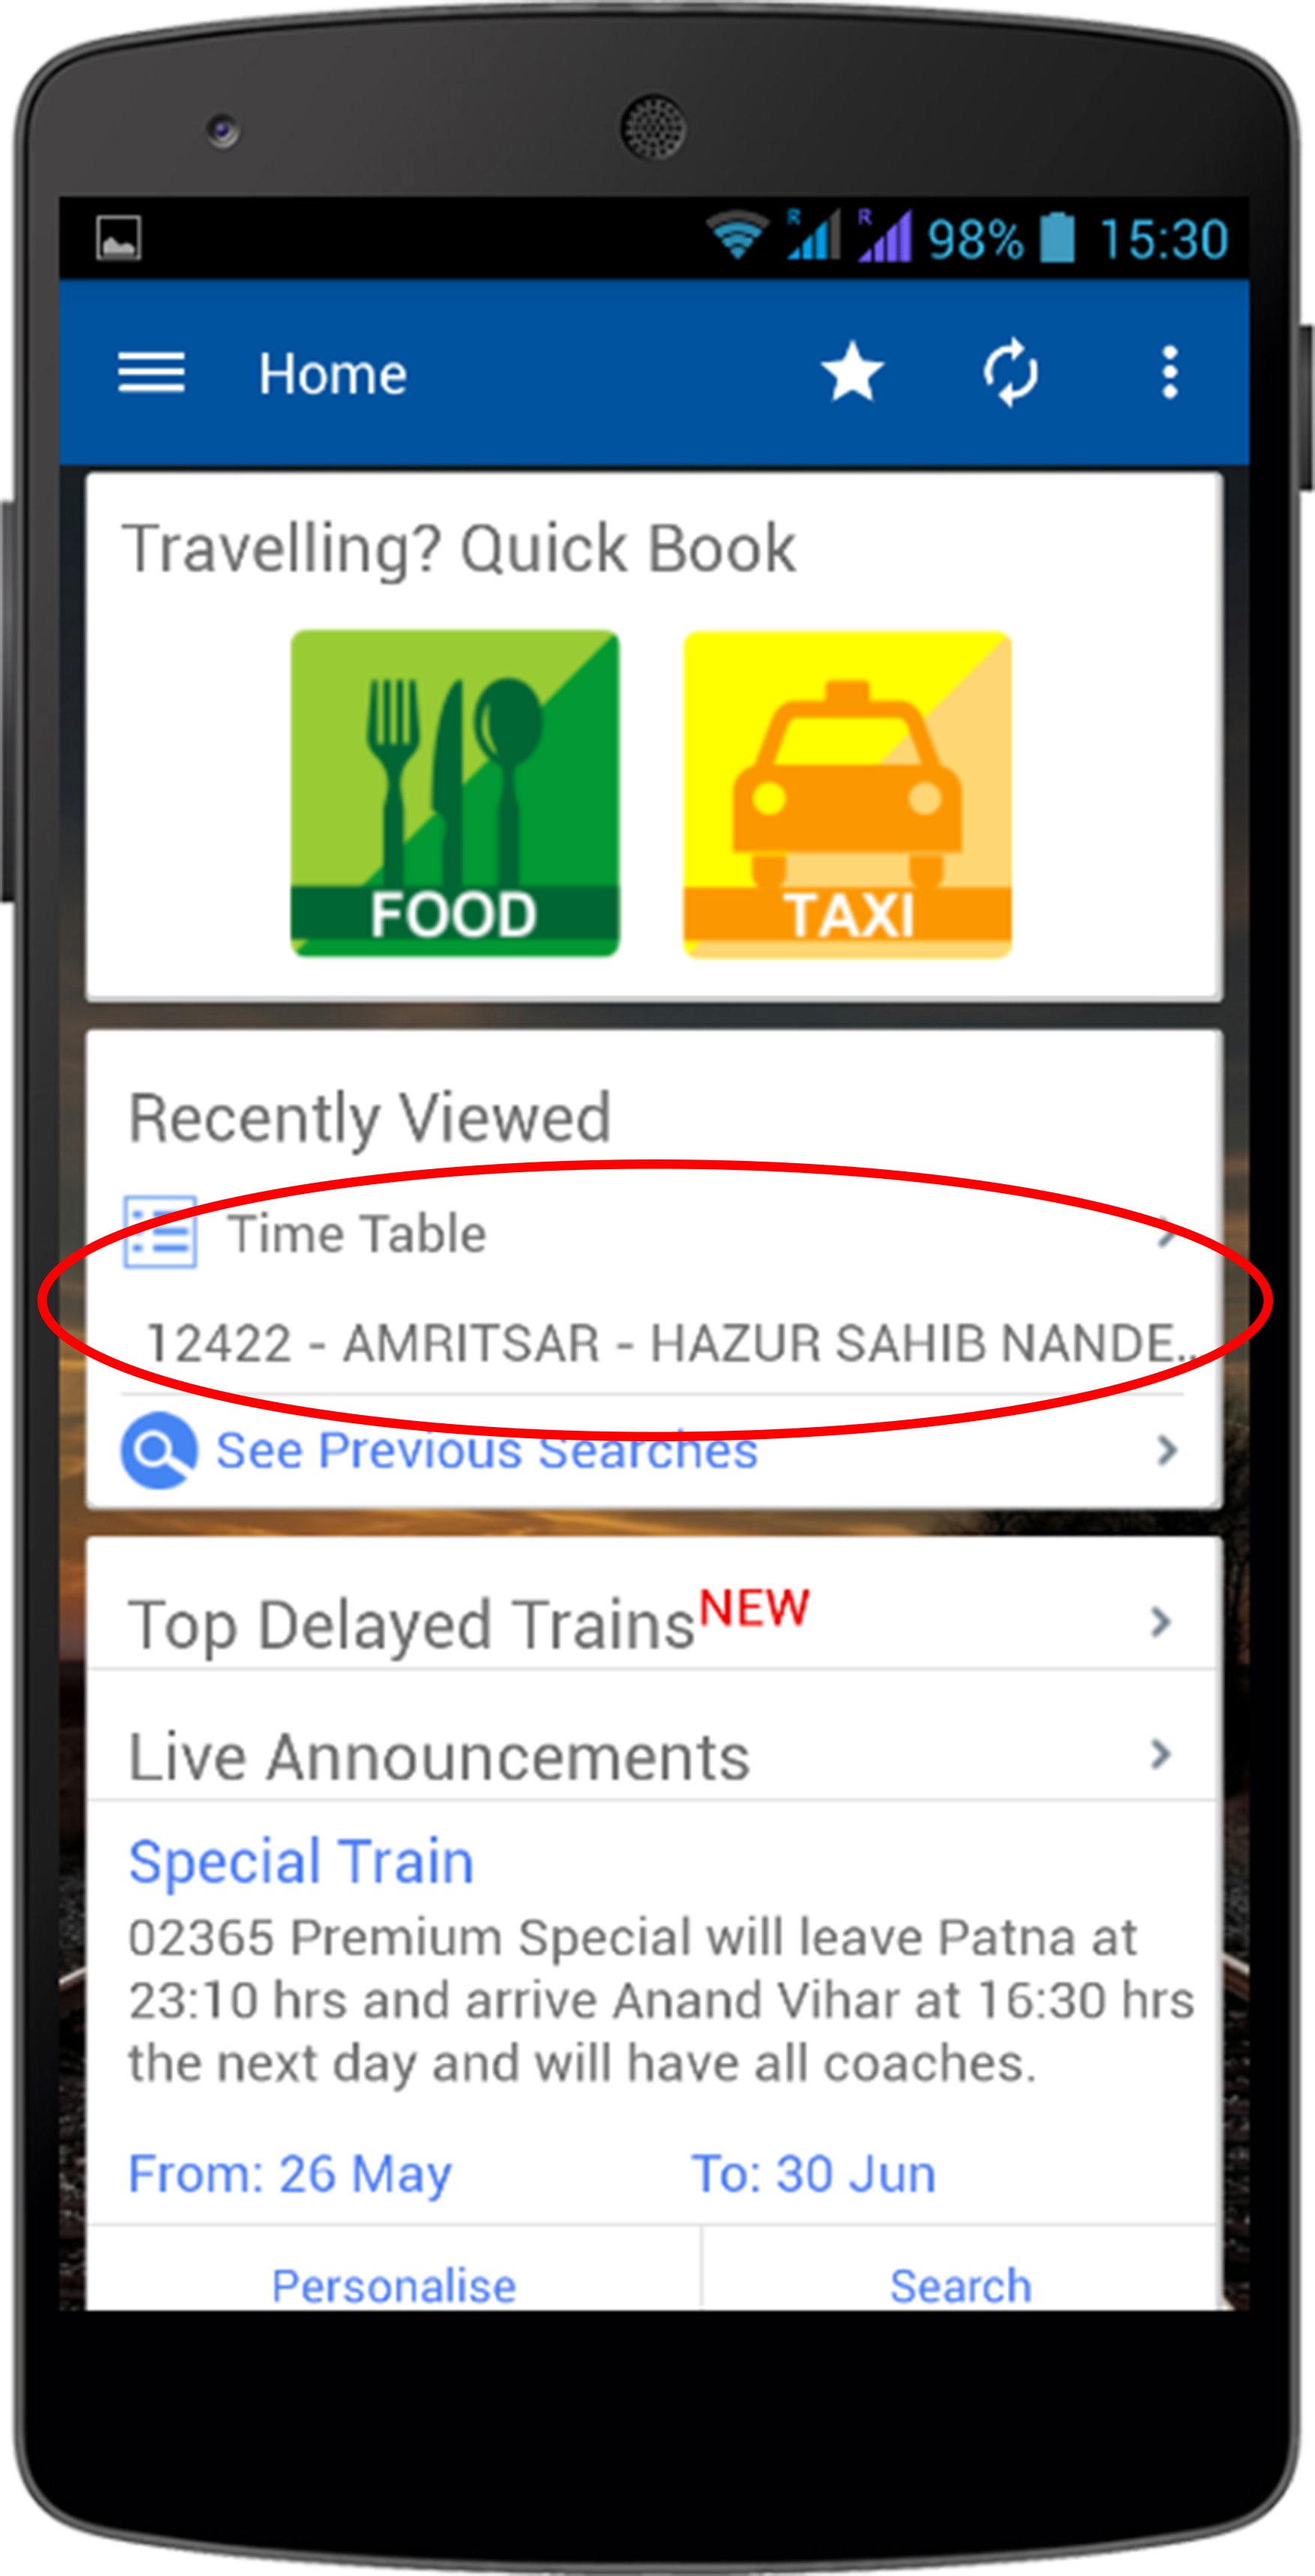 Offline Time Table on Home Screen